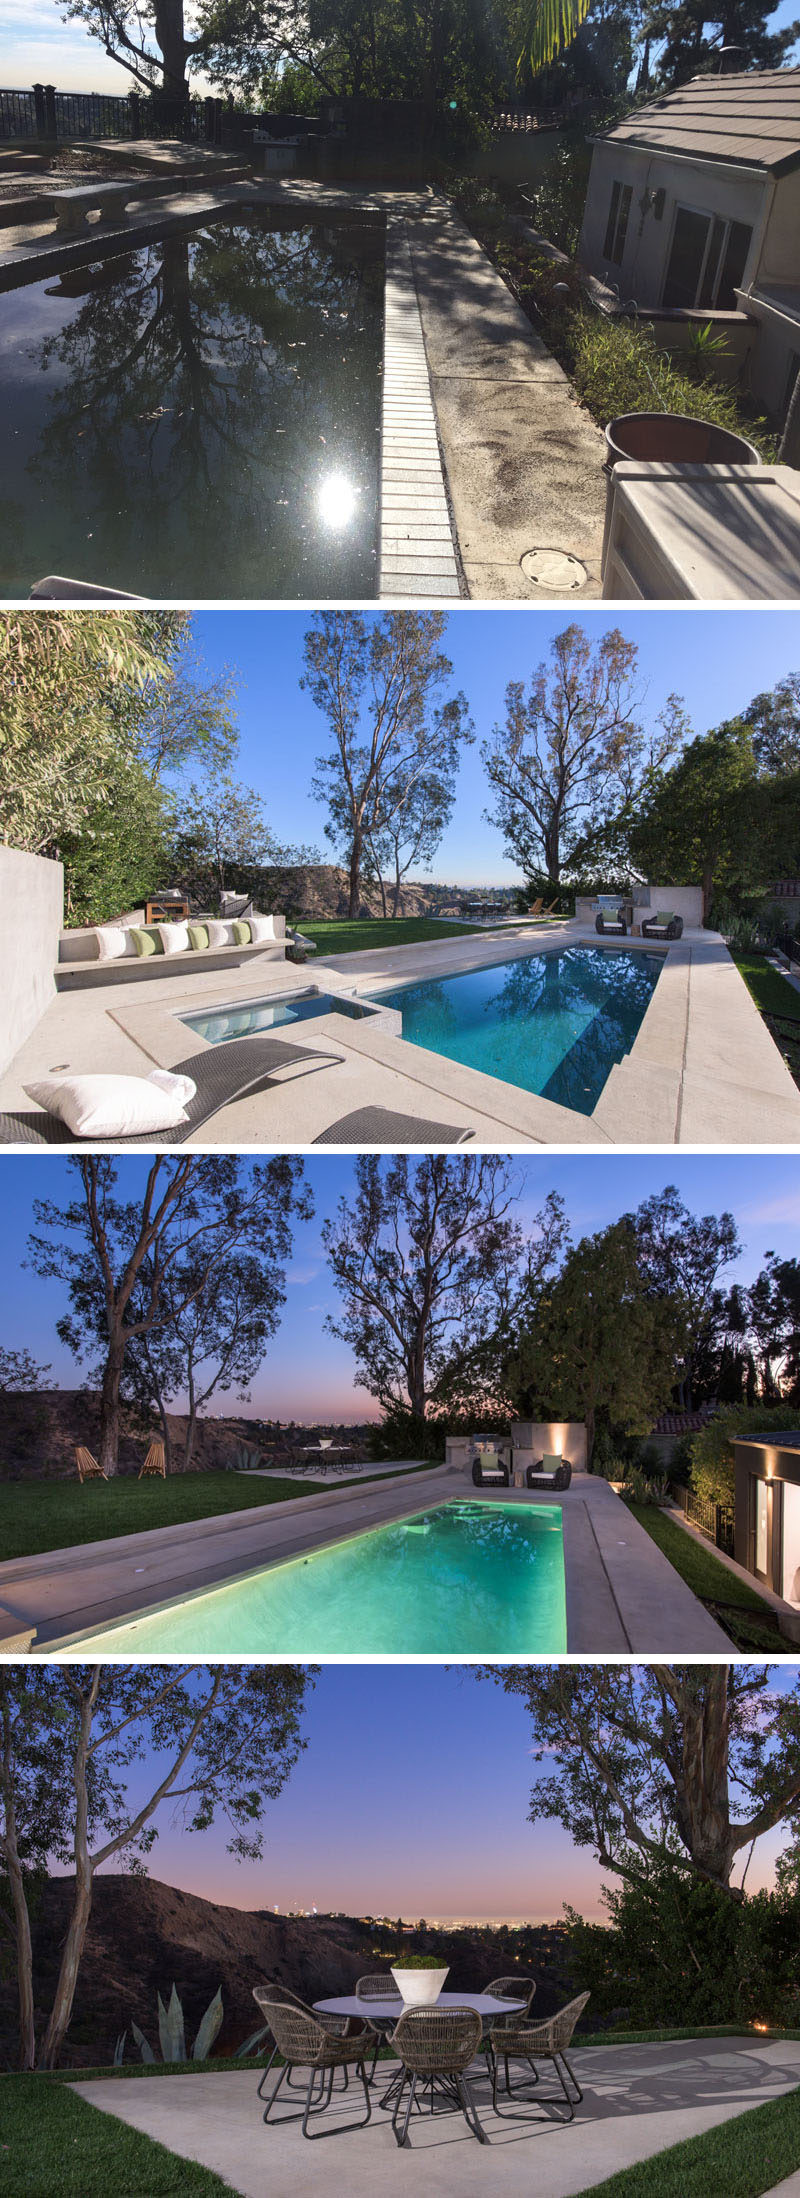 BEFORE & AFTER - This backyard, which has views of the surrounding neighborhood, received a major overhaul, with an updated pool and bbq area, built-in seating, a new lawn and patio area. #Landscaping #Backyard #SwimmingPool